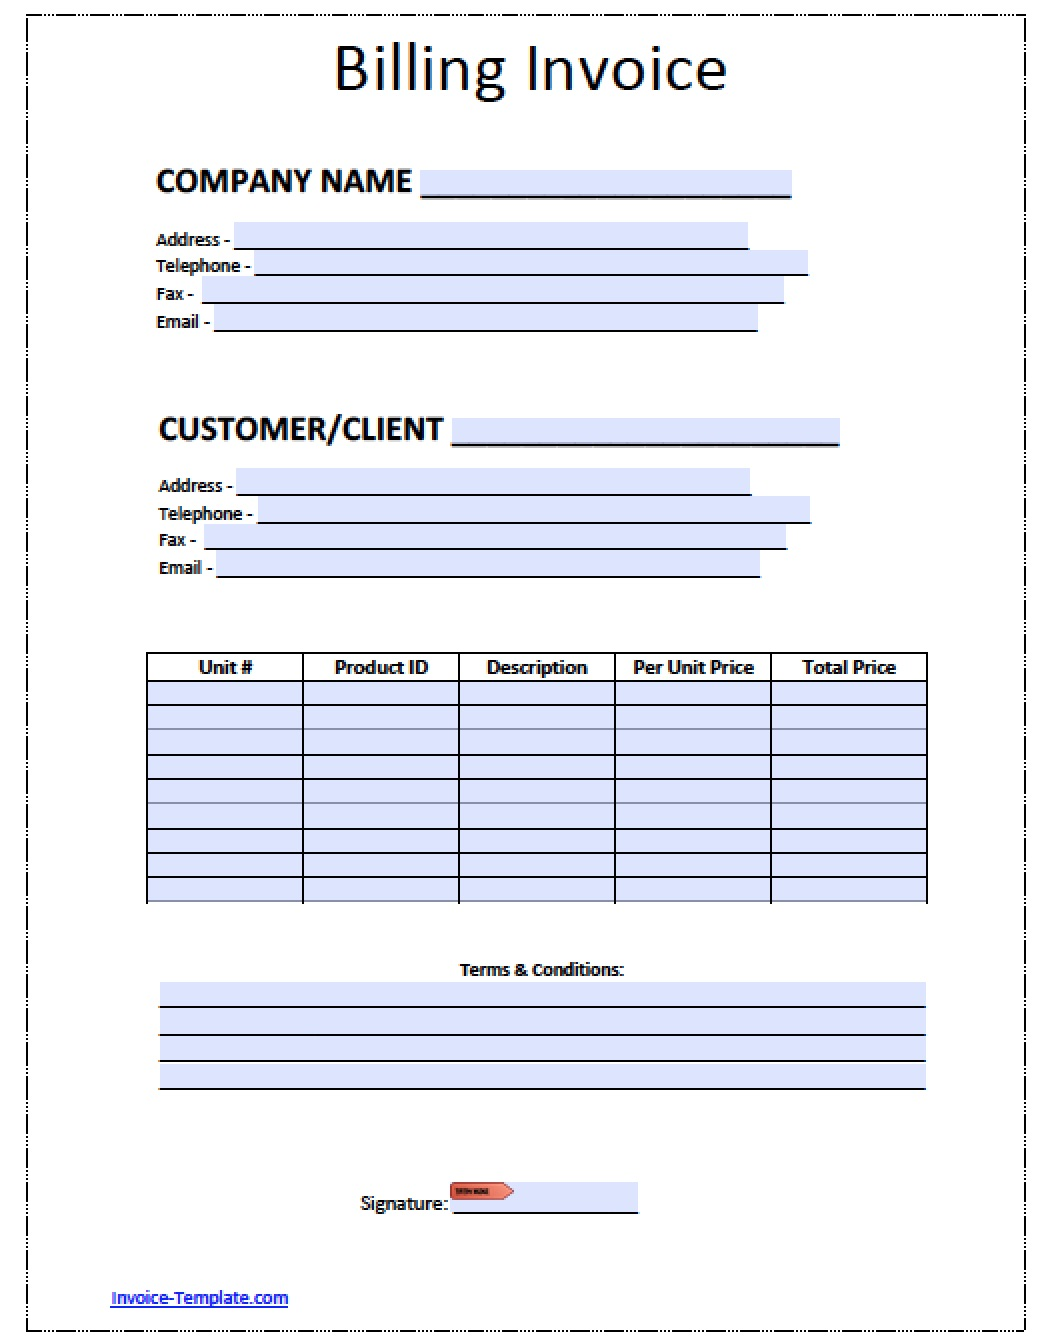 Free Billing Invoice Template Excel PDF Word Doc - Invoice sample template